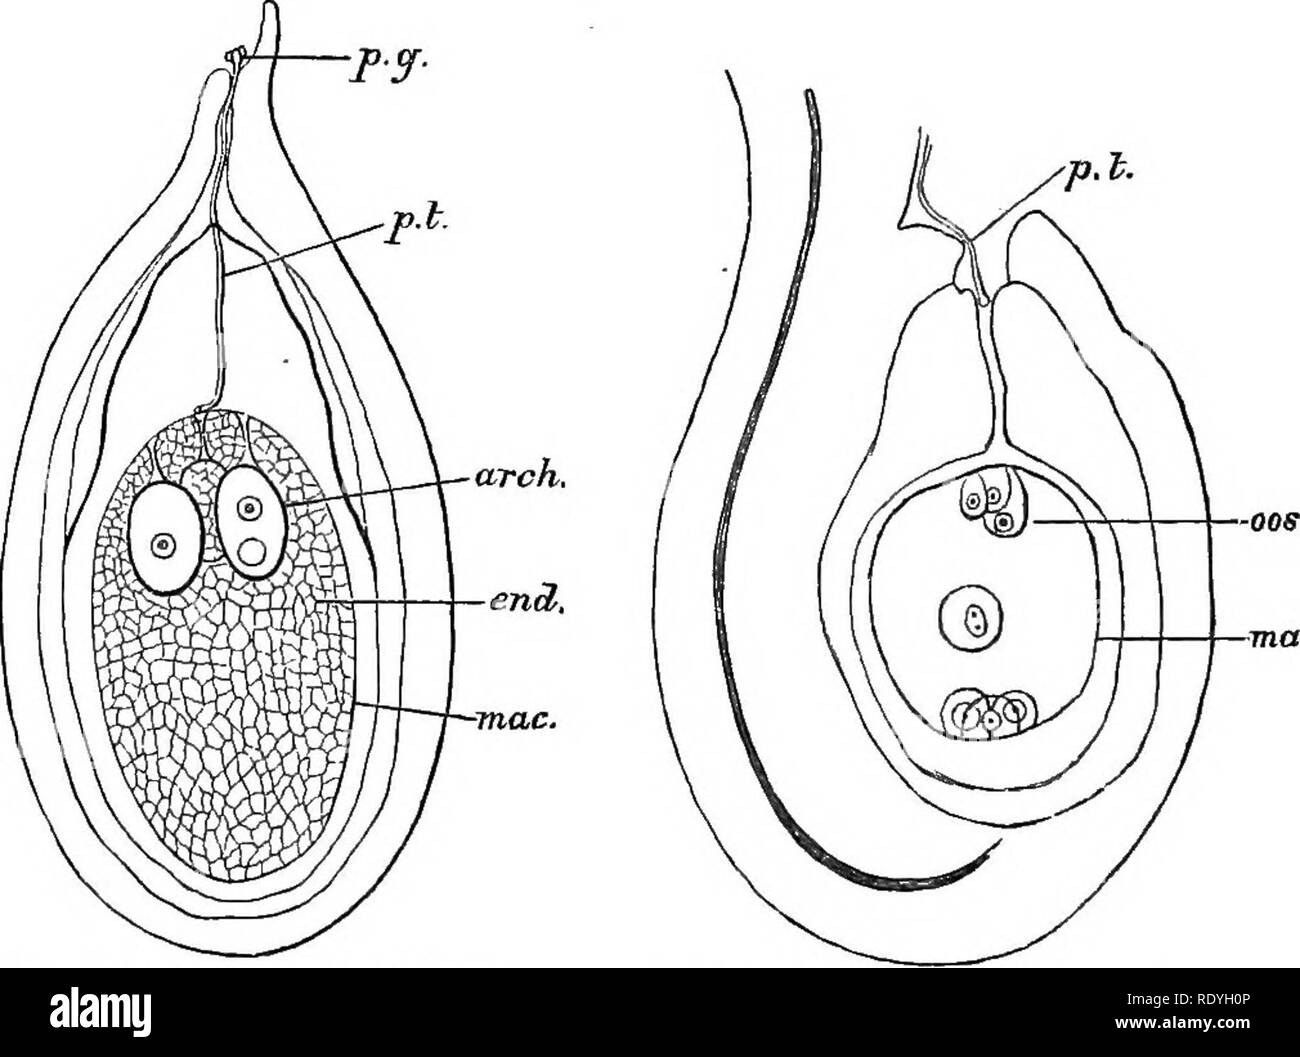 . An introduction to vegetable physiology. Plant physiology. 432 VEGETABLE PHYSIOLOGY structure known as the seed. It becomes detached from the parent sporophyte and disseminated in various ways. In the Angiosperms the formation of the seed is in the main similar to the process described, but it has certain peculiar features. The embryo-sac or megaspore has the same structure as in the Gymnosperms and remains enclosed in the sporangium or ovule. The development of the prothallium is different. The megaspore has a single nucleus as in other cases. When germination begins. Fig. 178.—Ovule of Pin - Stock Image